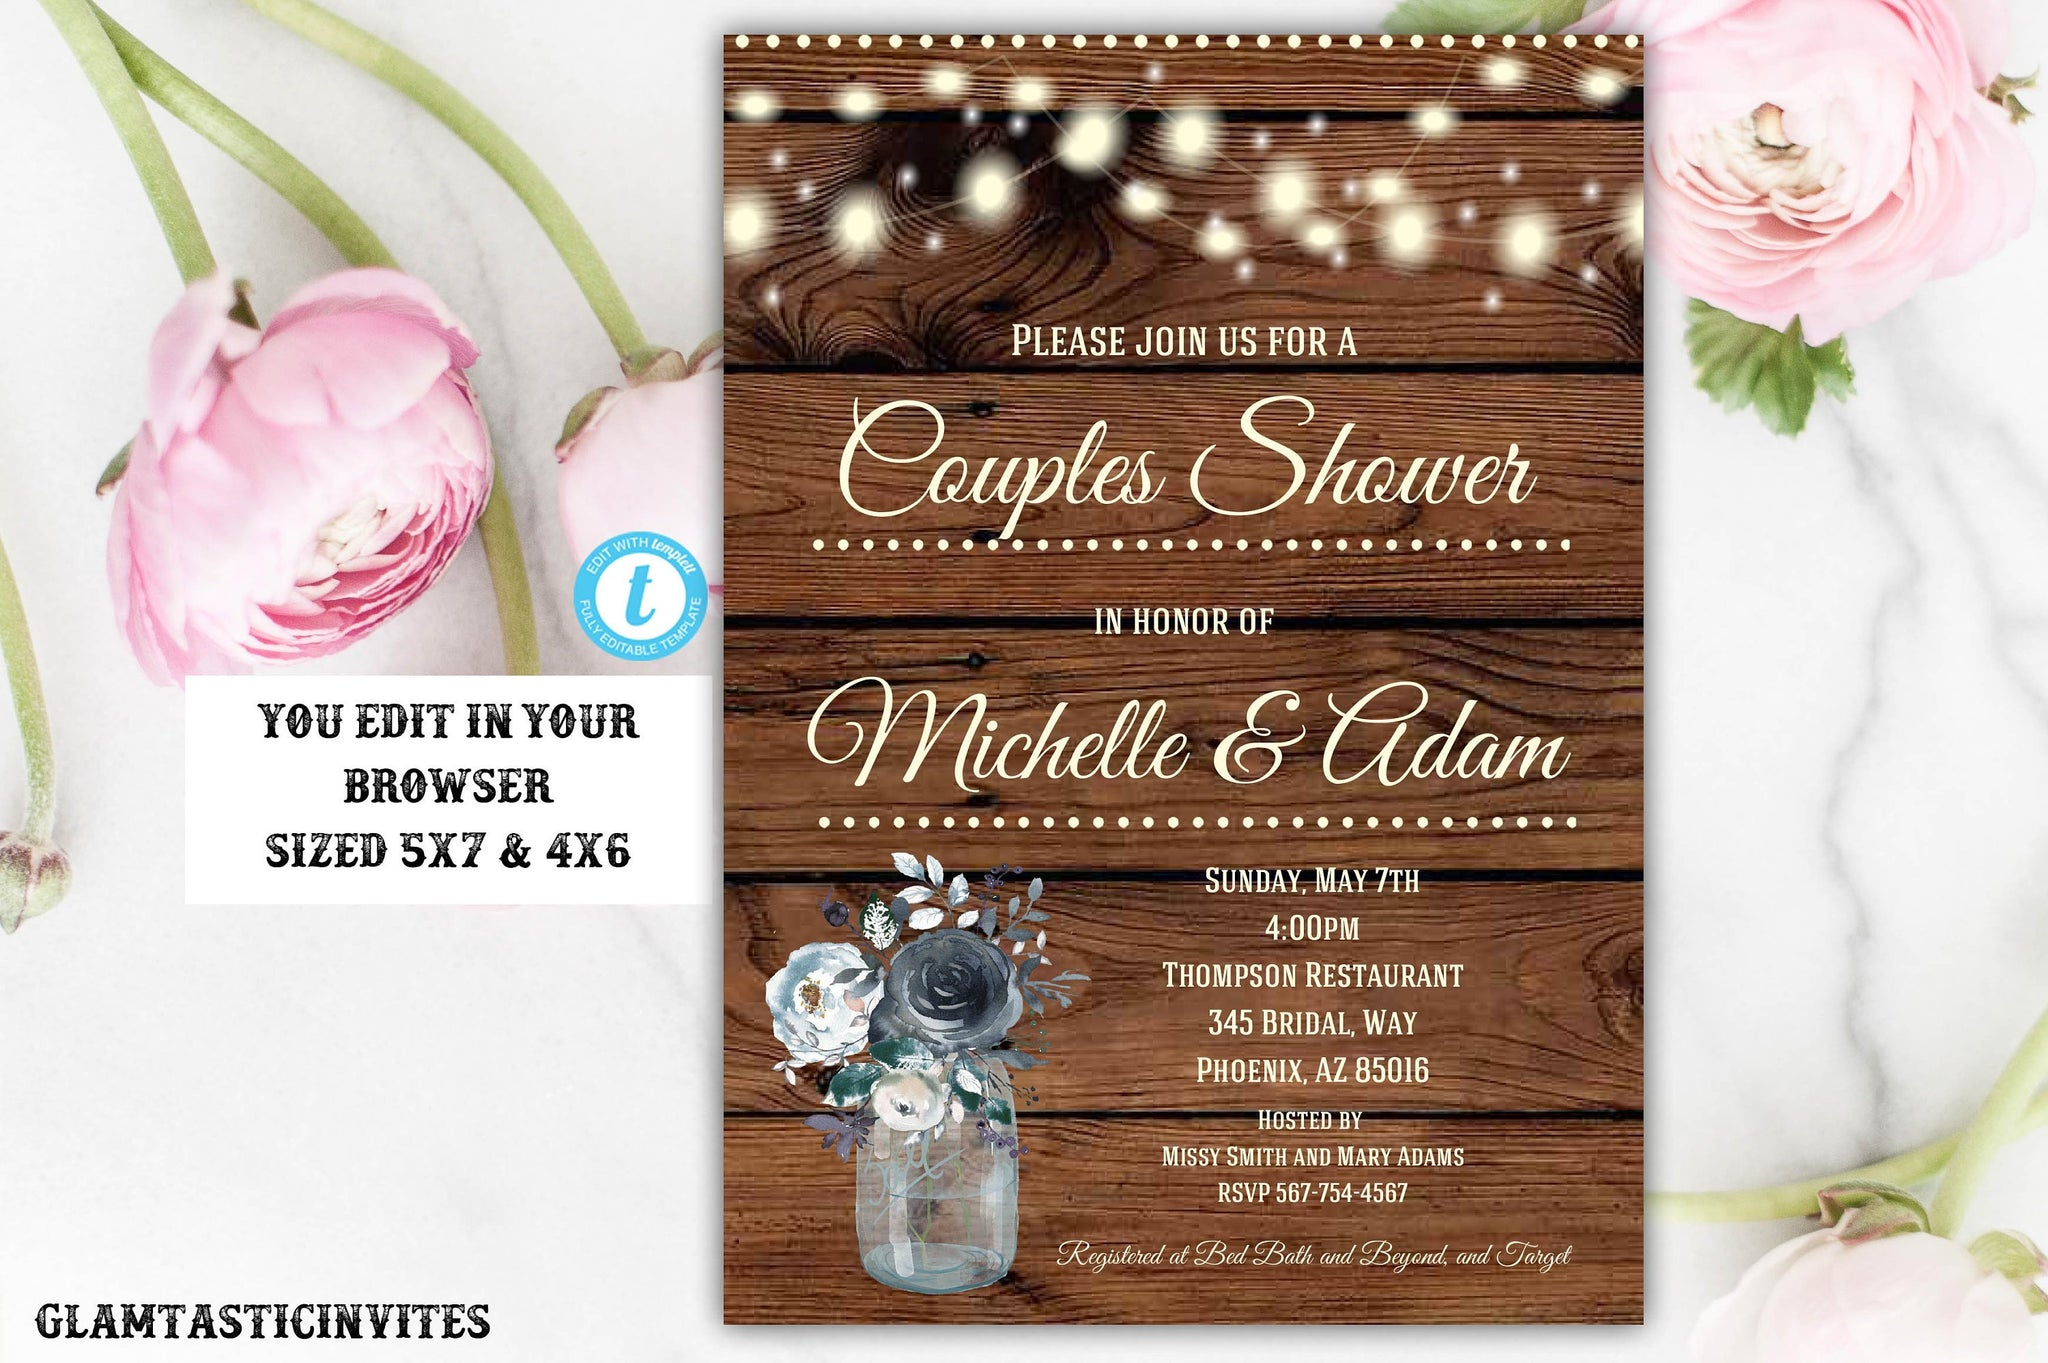 Rustic Couples Shower Invitation Template, Editable, Navy Blue Template, Flower Invitation, Couples Shower Invitation, Shower Template, DIY